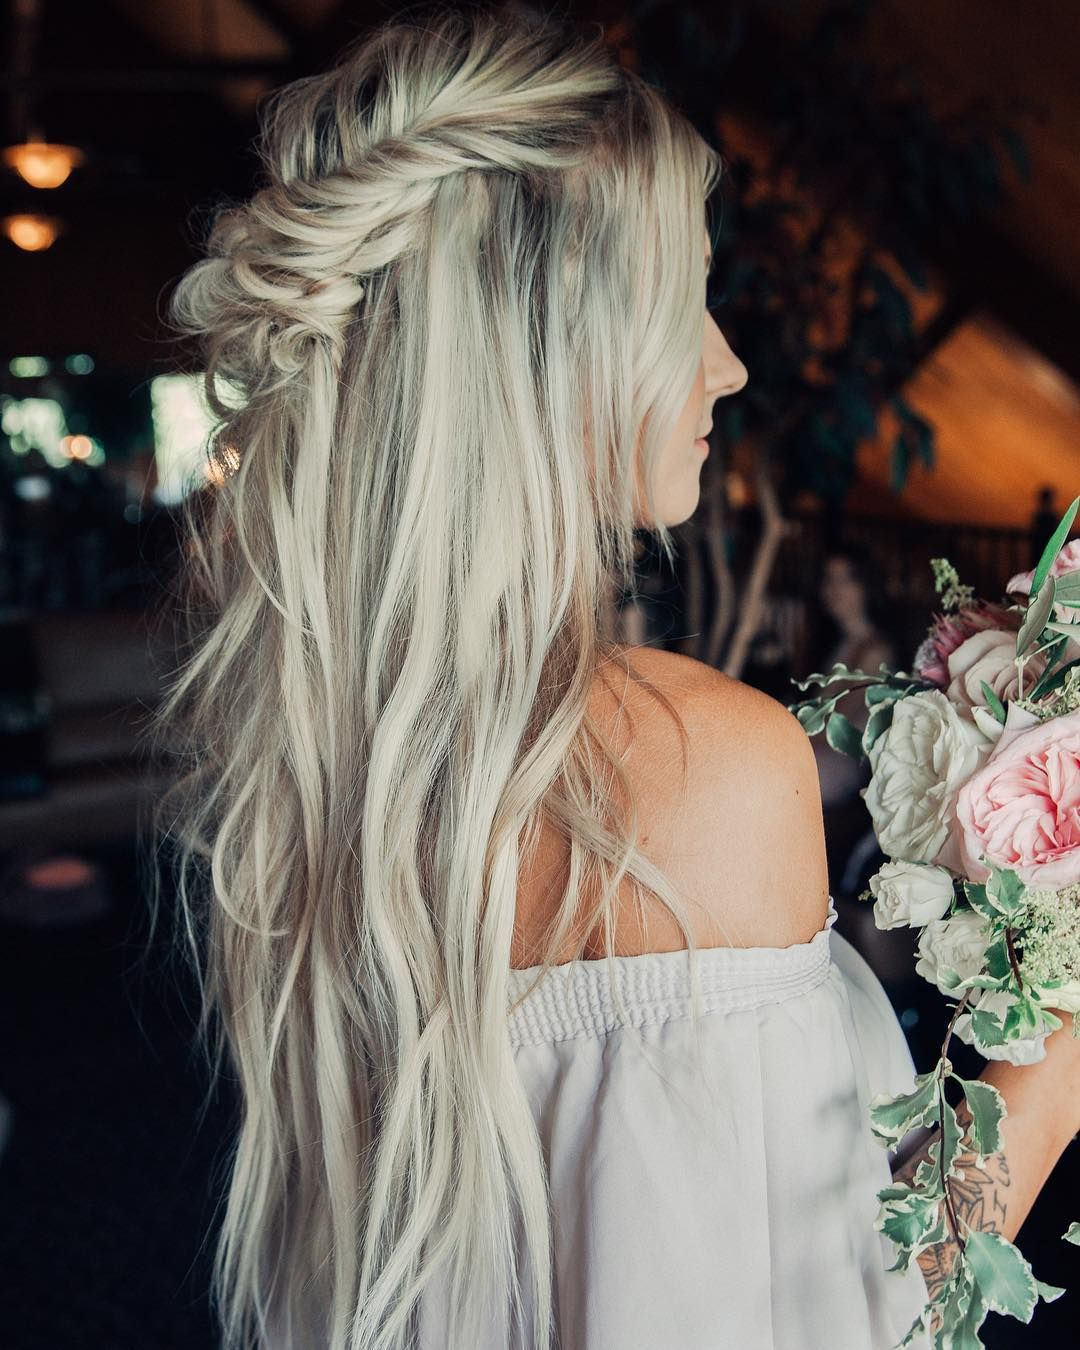 17 Wedding Hairstyles You Ll Adore: Braids & Bridal (@taylor_lamb